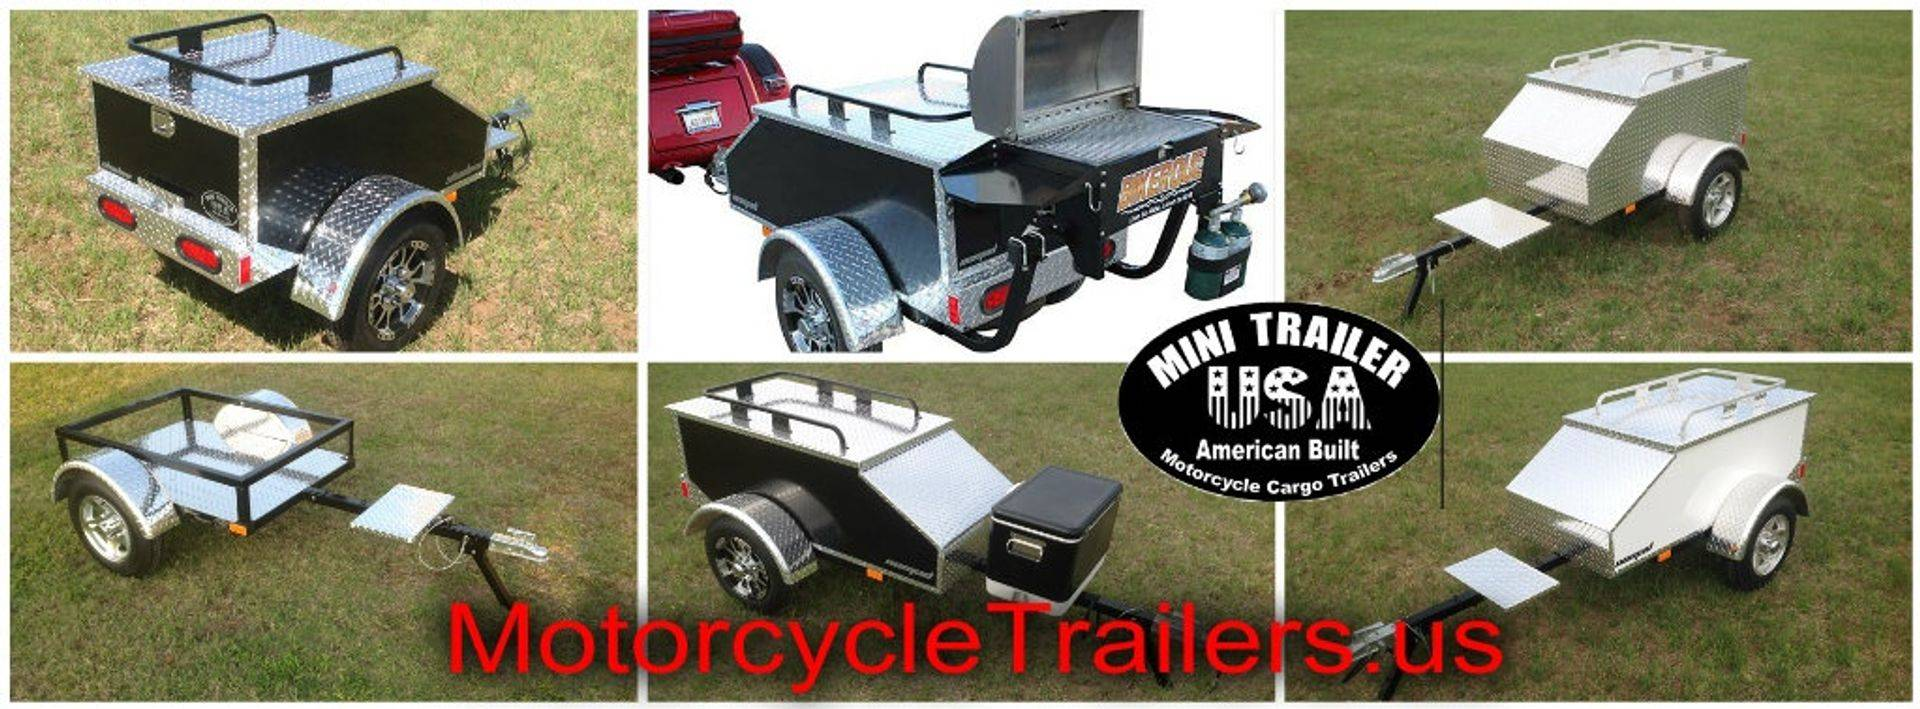 Pull behind motorcycle travel trailers